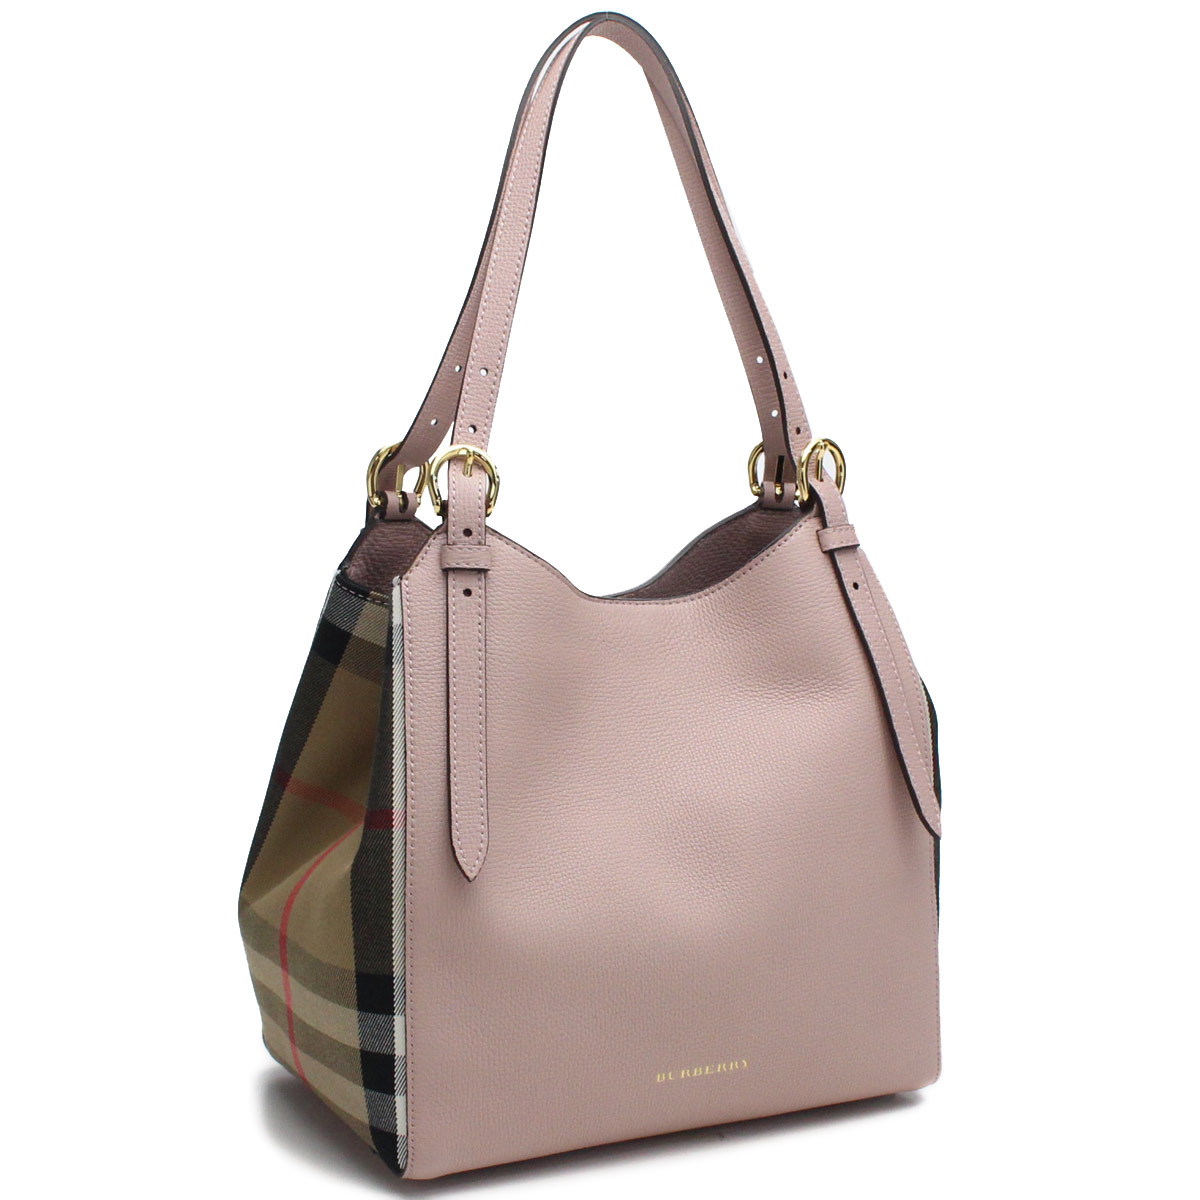 9de63ecd923 Bighit The total brand wholesale: Burberry (BURBERRY) SM CANTERBY L Burberry  check tote bag 3997148 PALE ORCHID pink system multicolored   Rakuten  Global ...